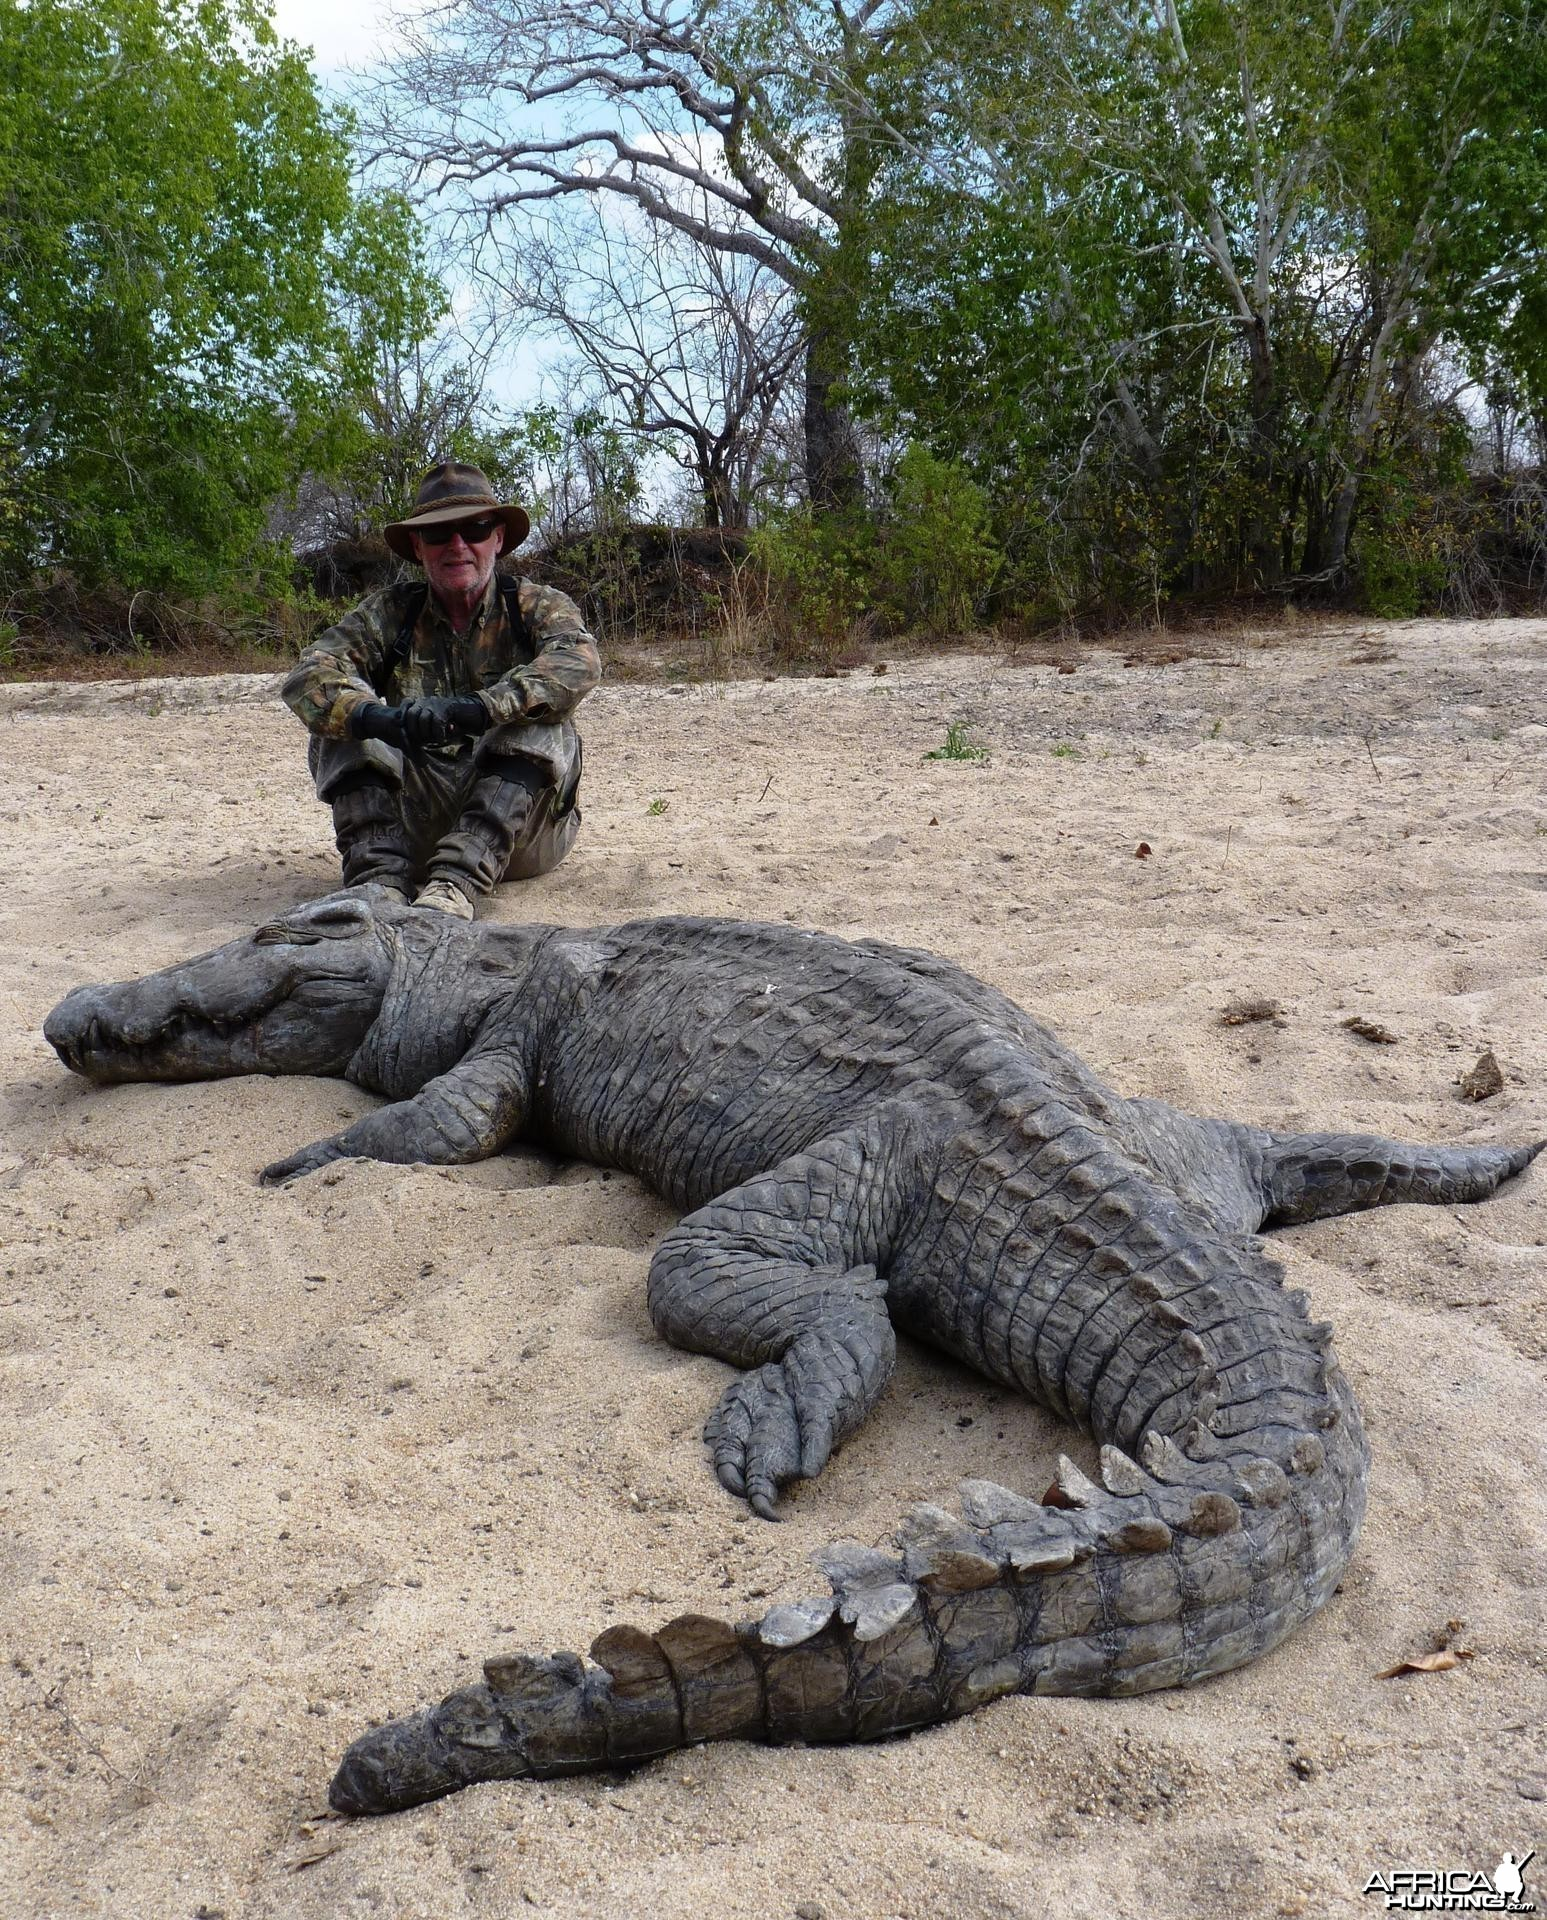 Crocodile hunted in from a hole, Tanzania